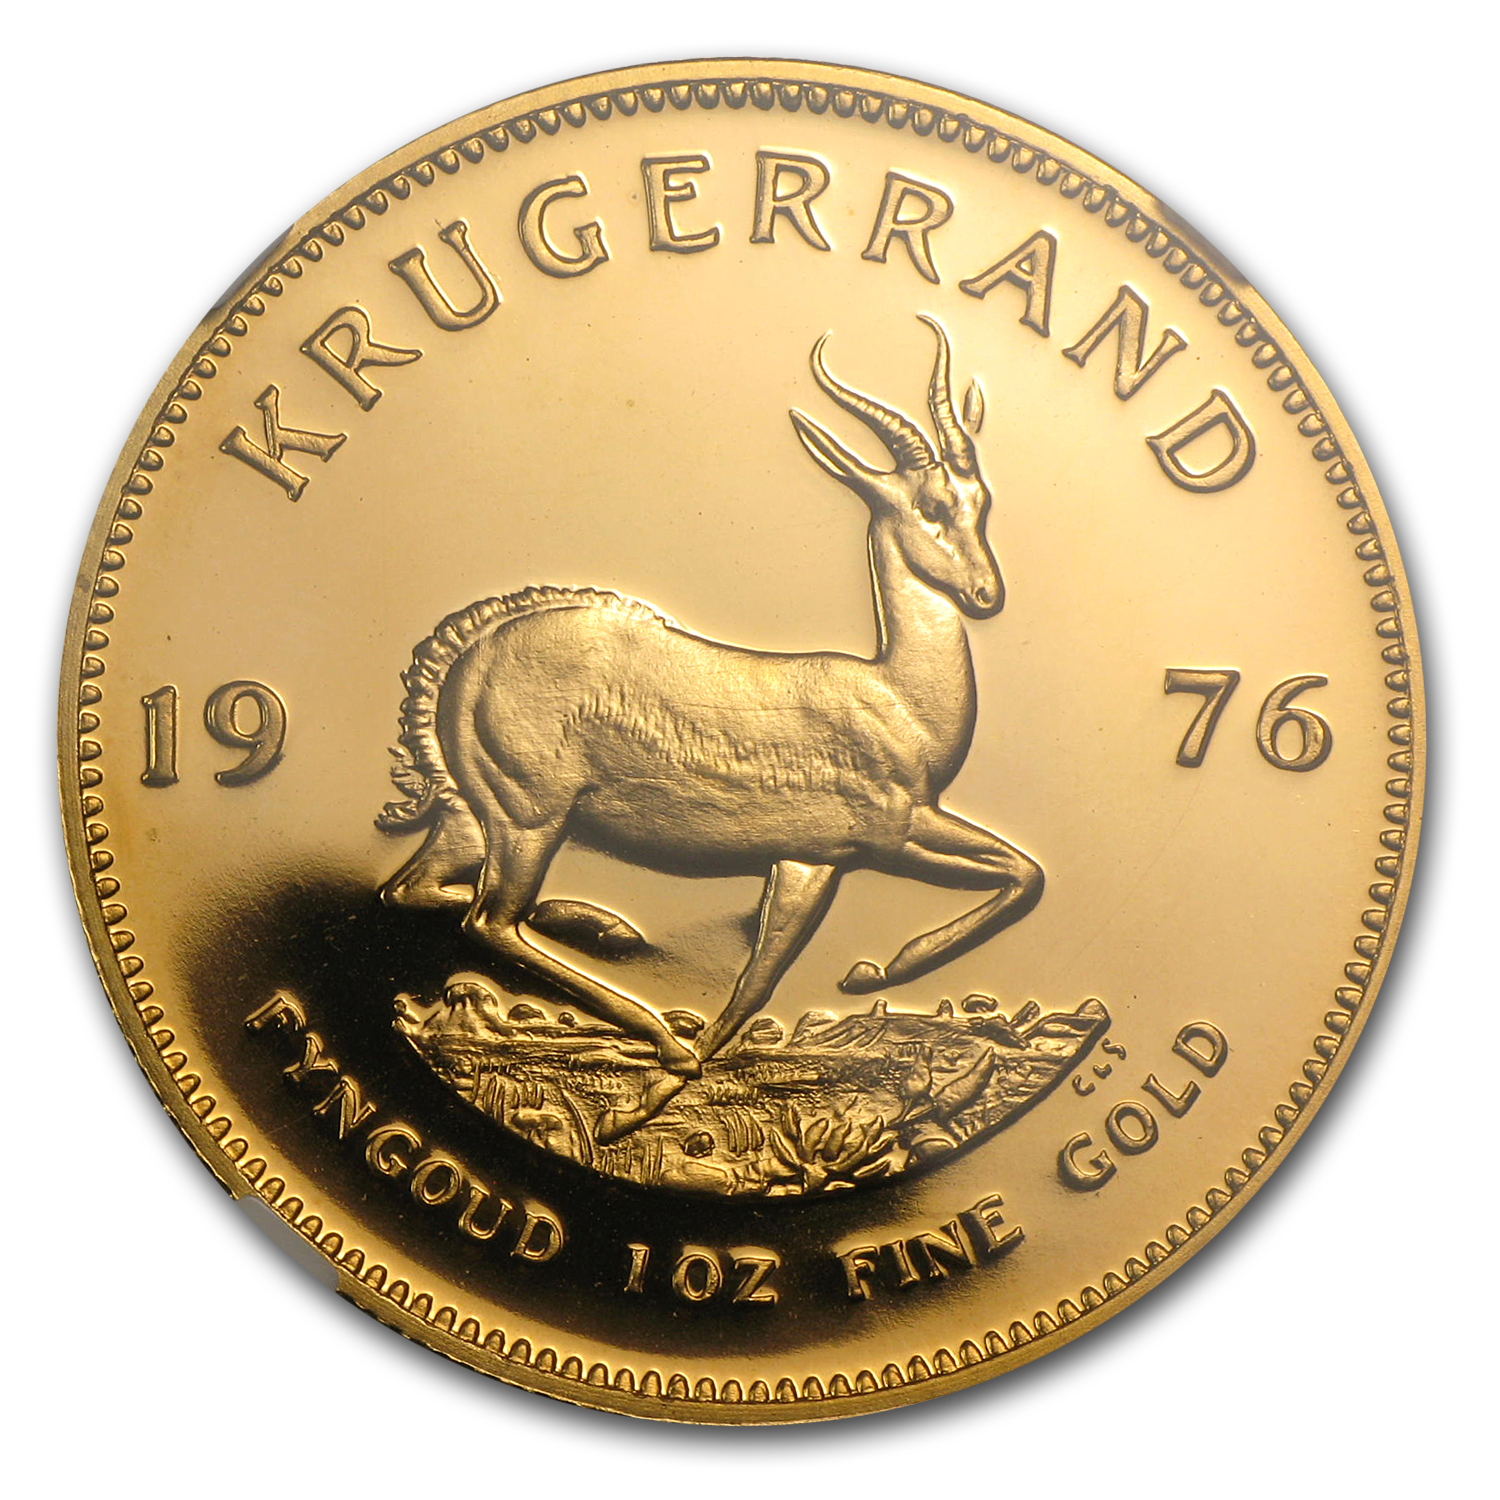 1976 South Africa 1 oz Gold Krugerrand PF-67 Cameo NGC